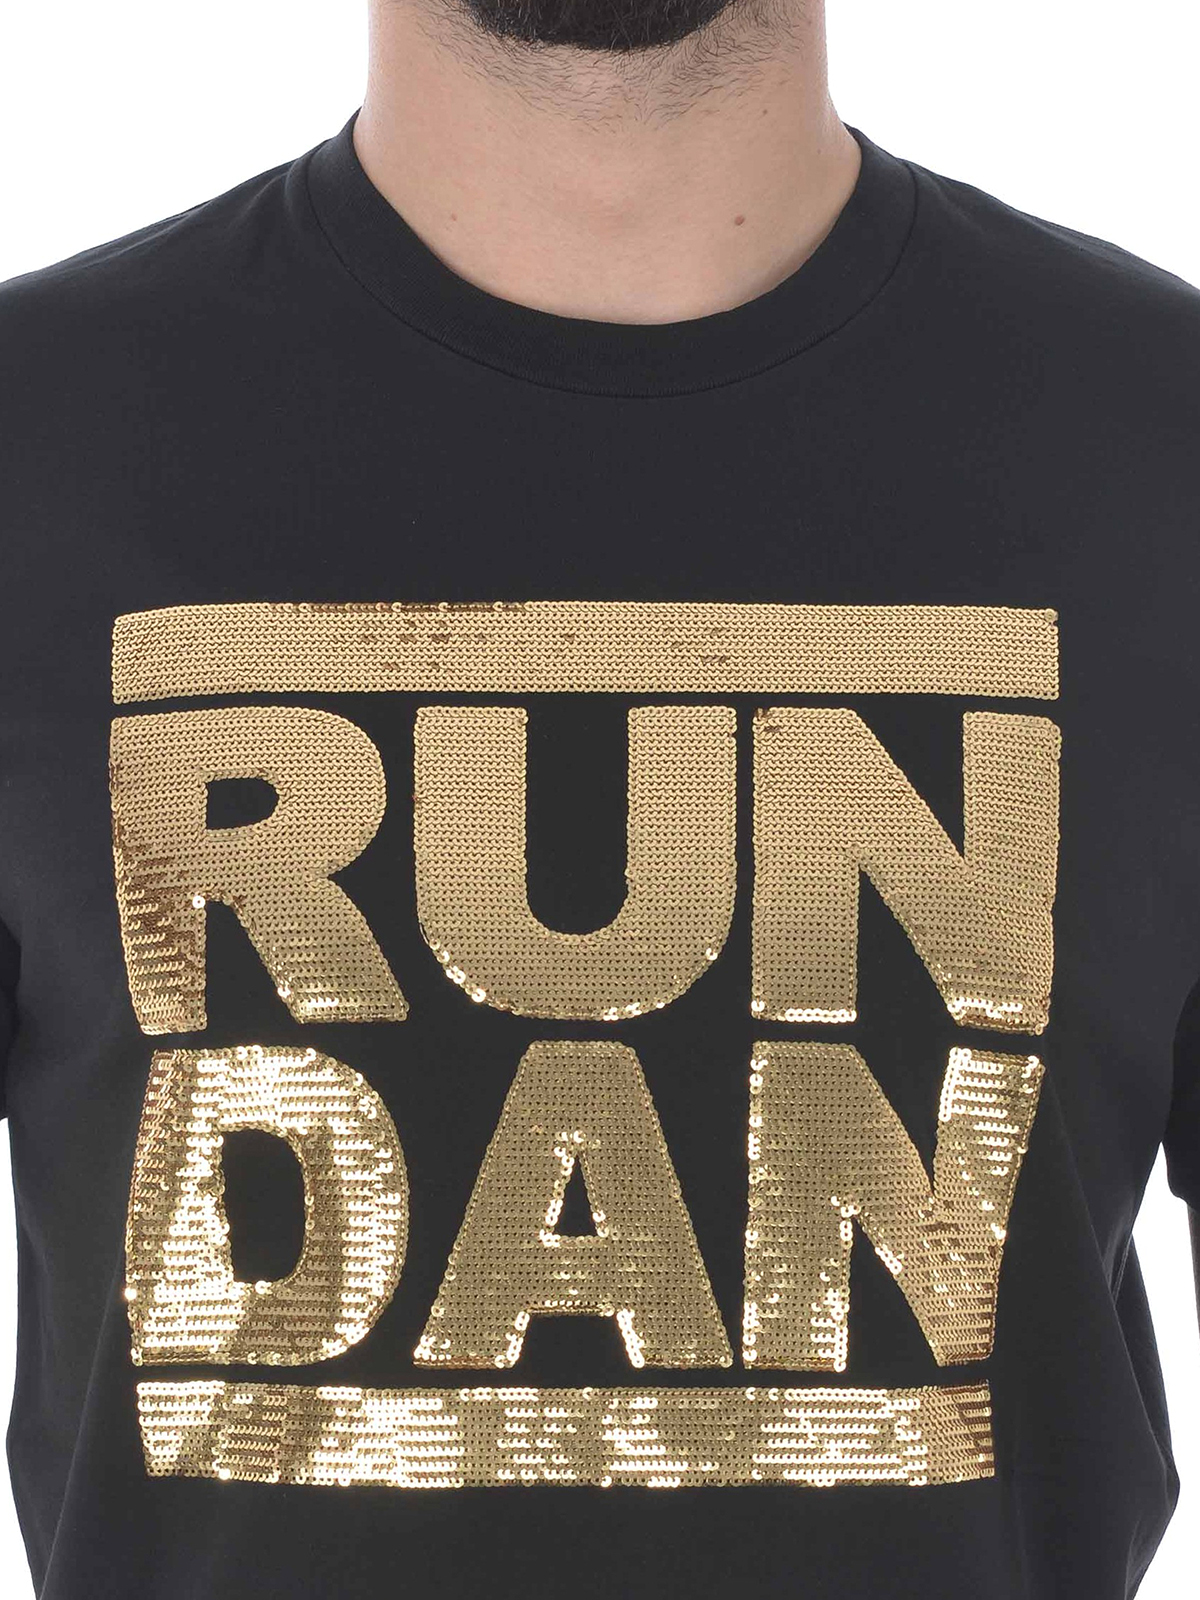 reputable site 65887 93616 Dsquared2 - T-shirt nera con Run Dan in paillettes oro - t ...